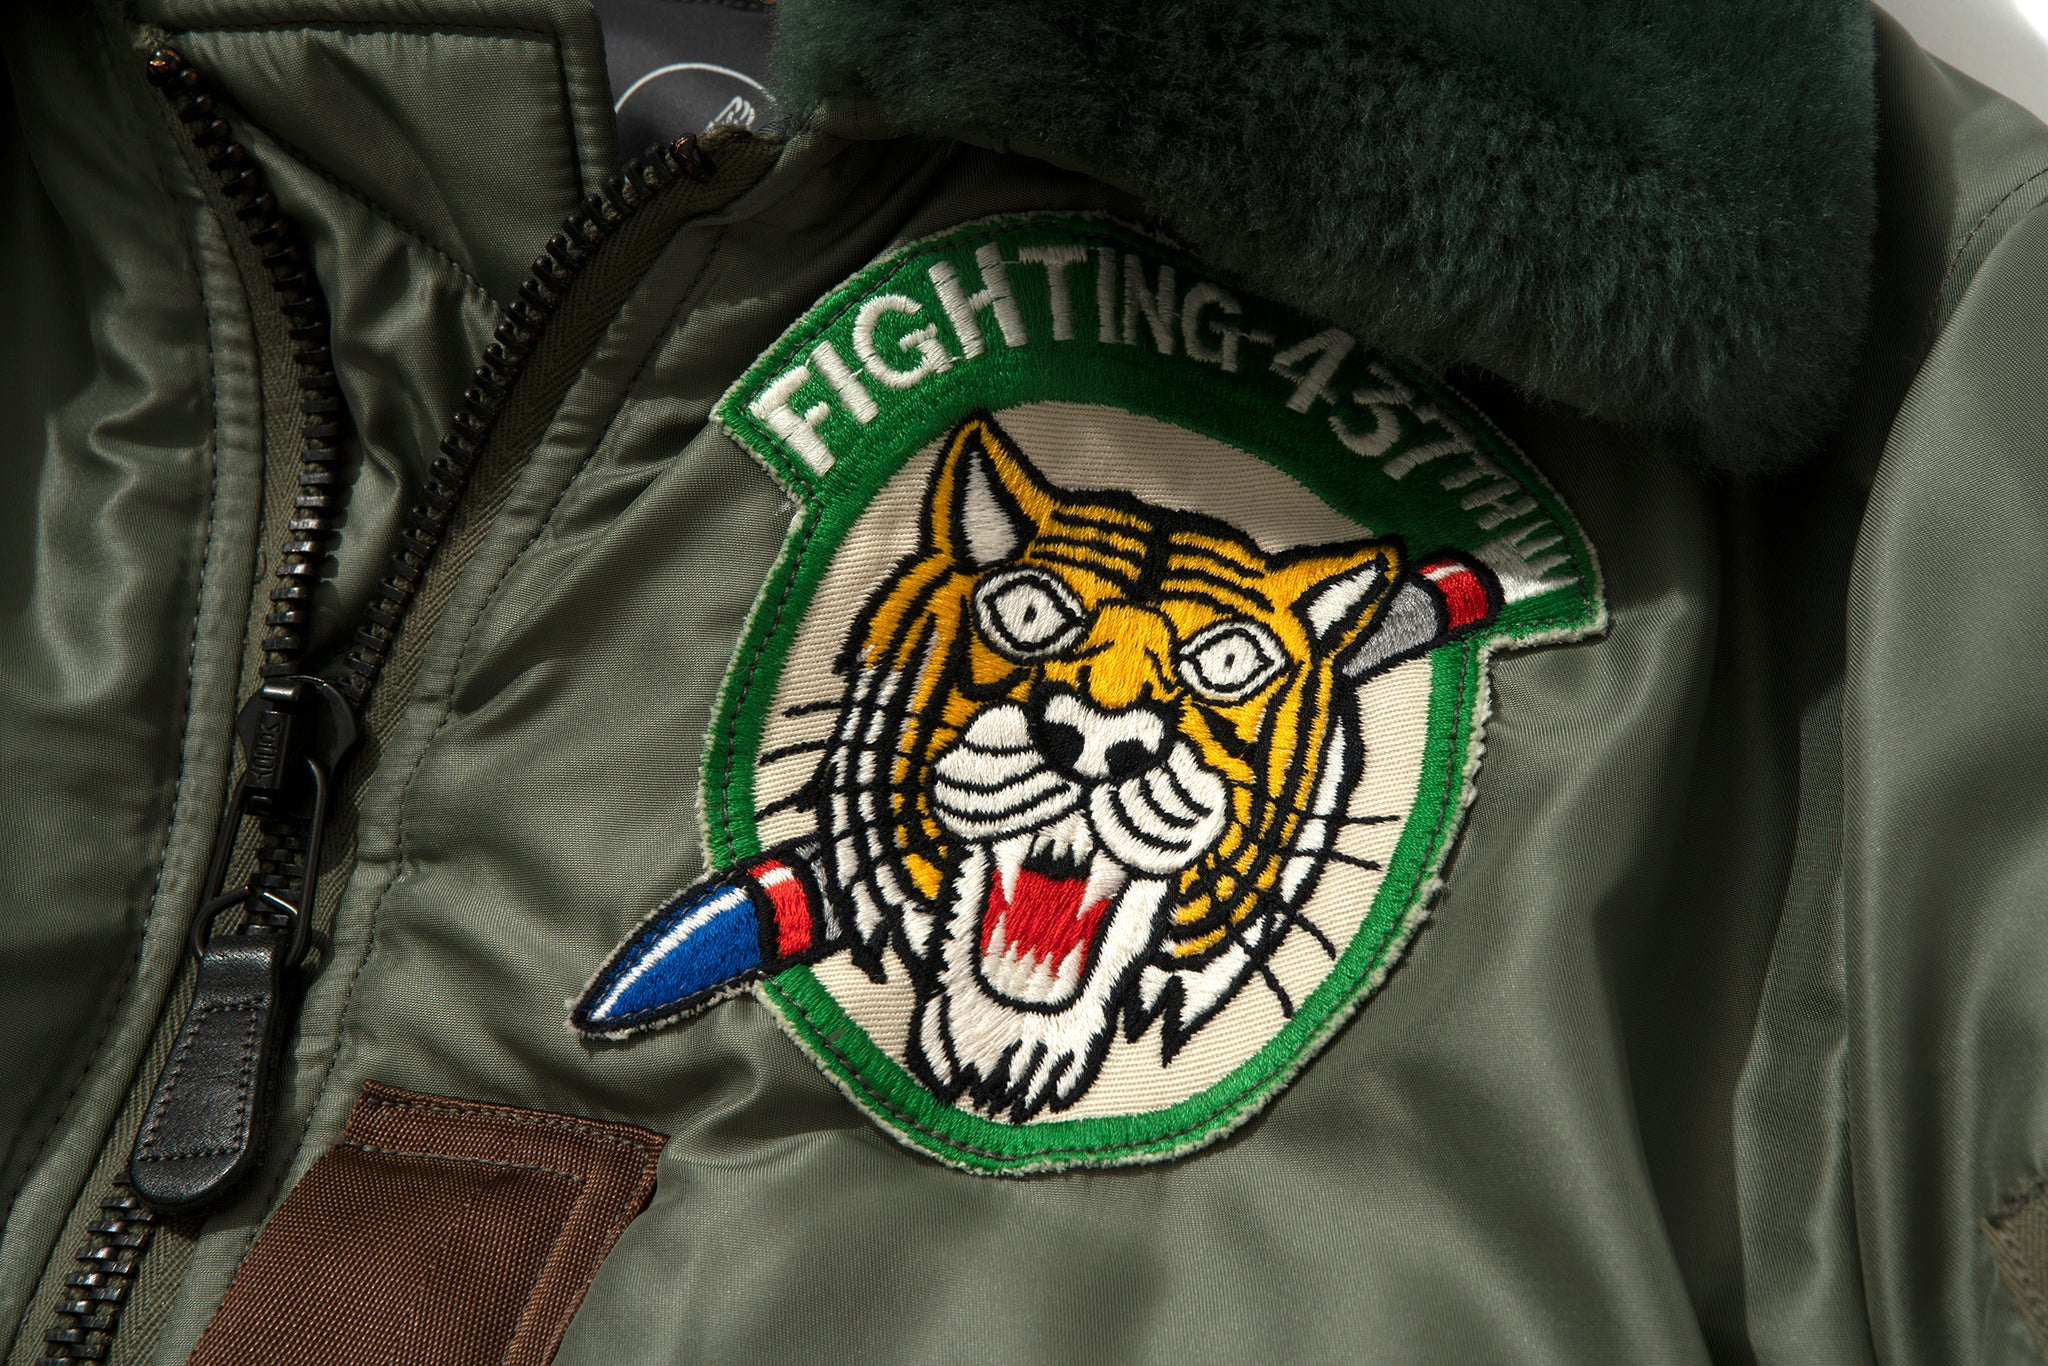 TYPE B-15D / FIGHTING - 437th